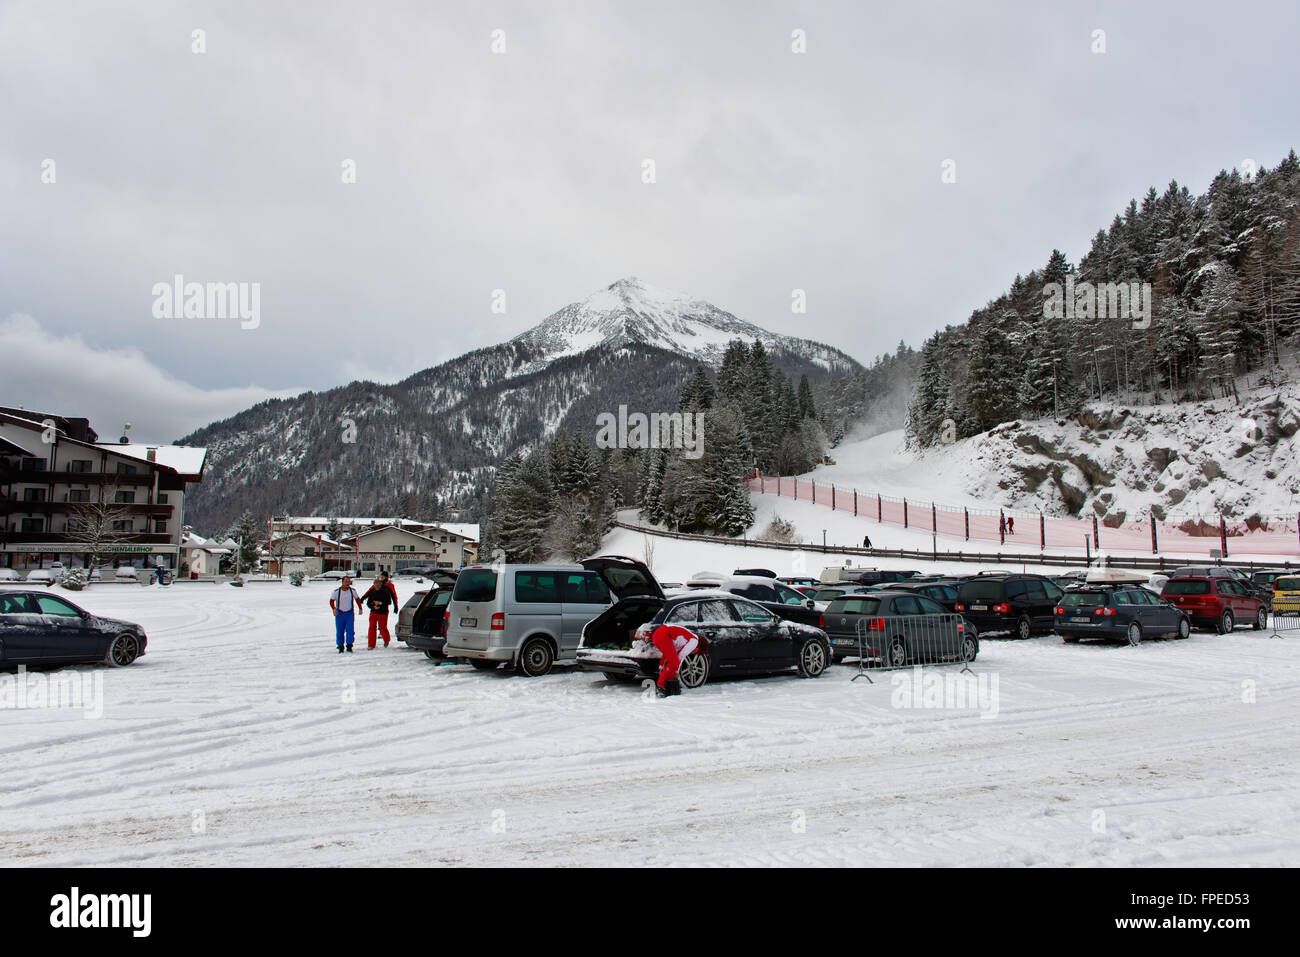 Ski resort village in Achenkirch, Austria with many parked cars near hill with hotel and large mountain in background - Stock Image